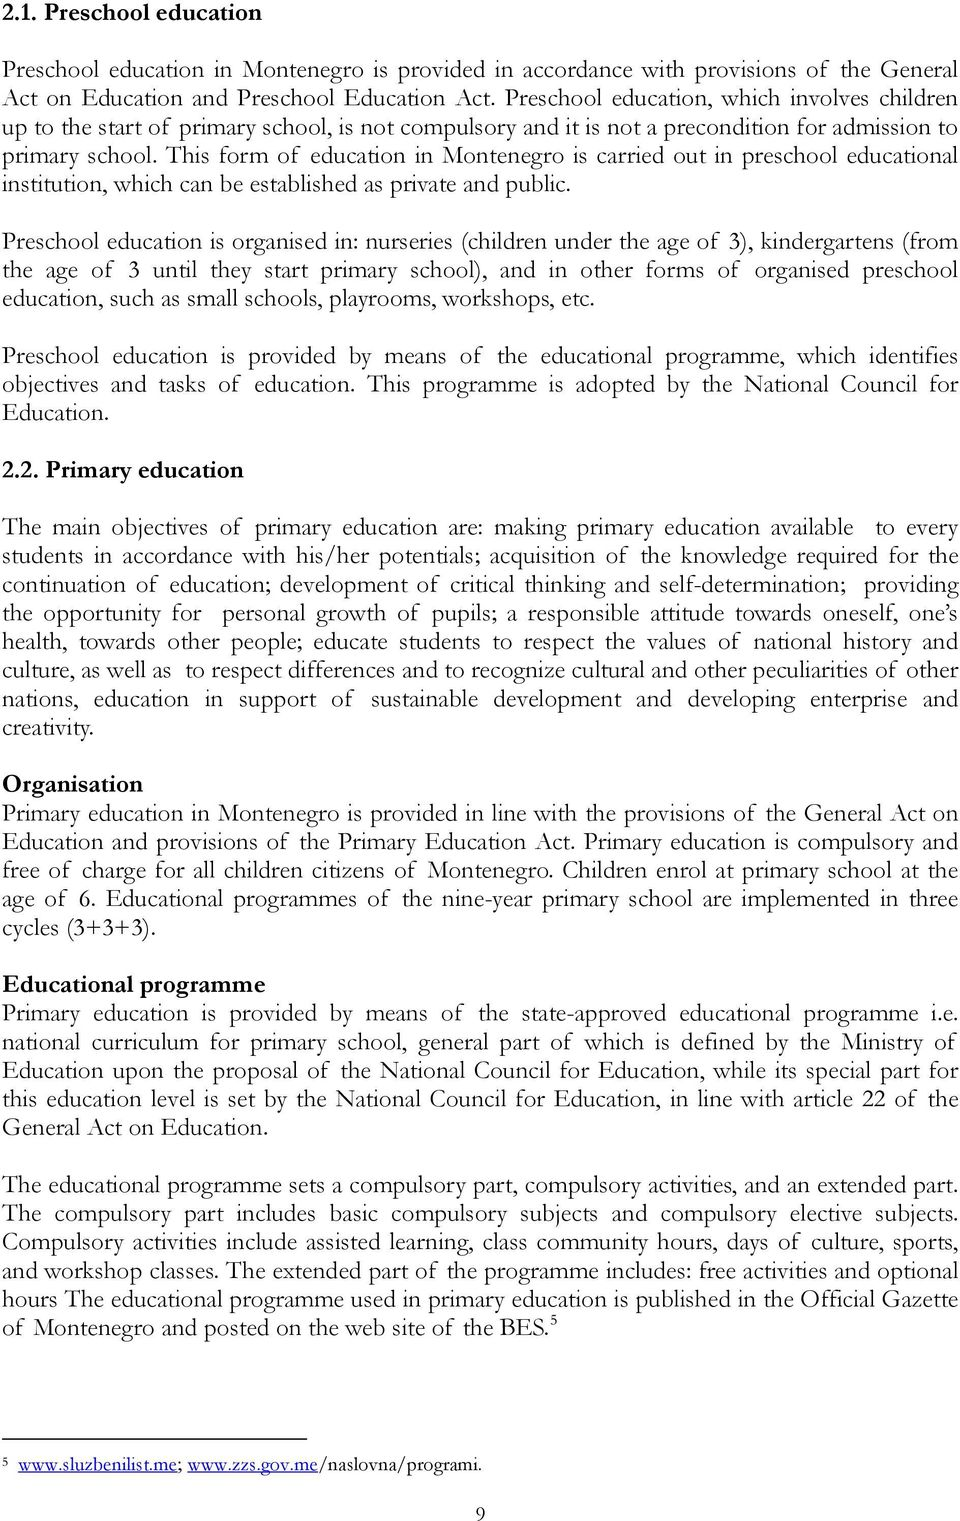 This form of education in Montenegro is carried out in preschool educational institution, which can be established as private and public.